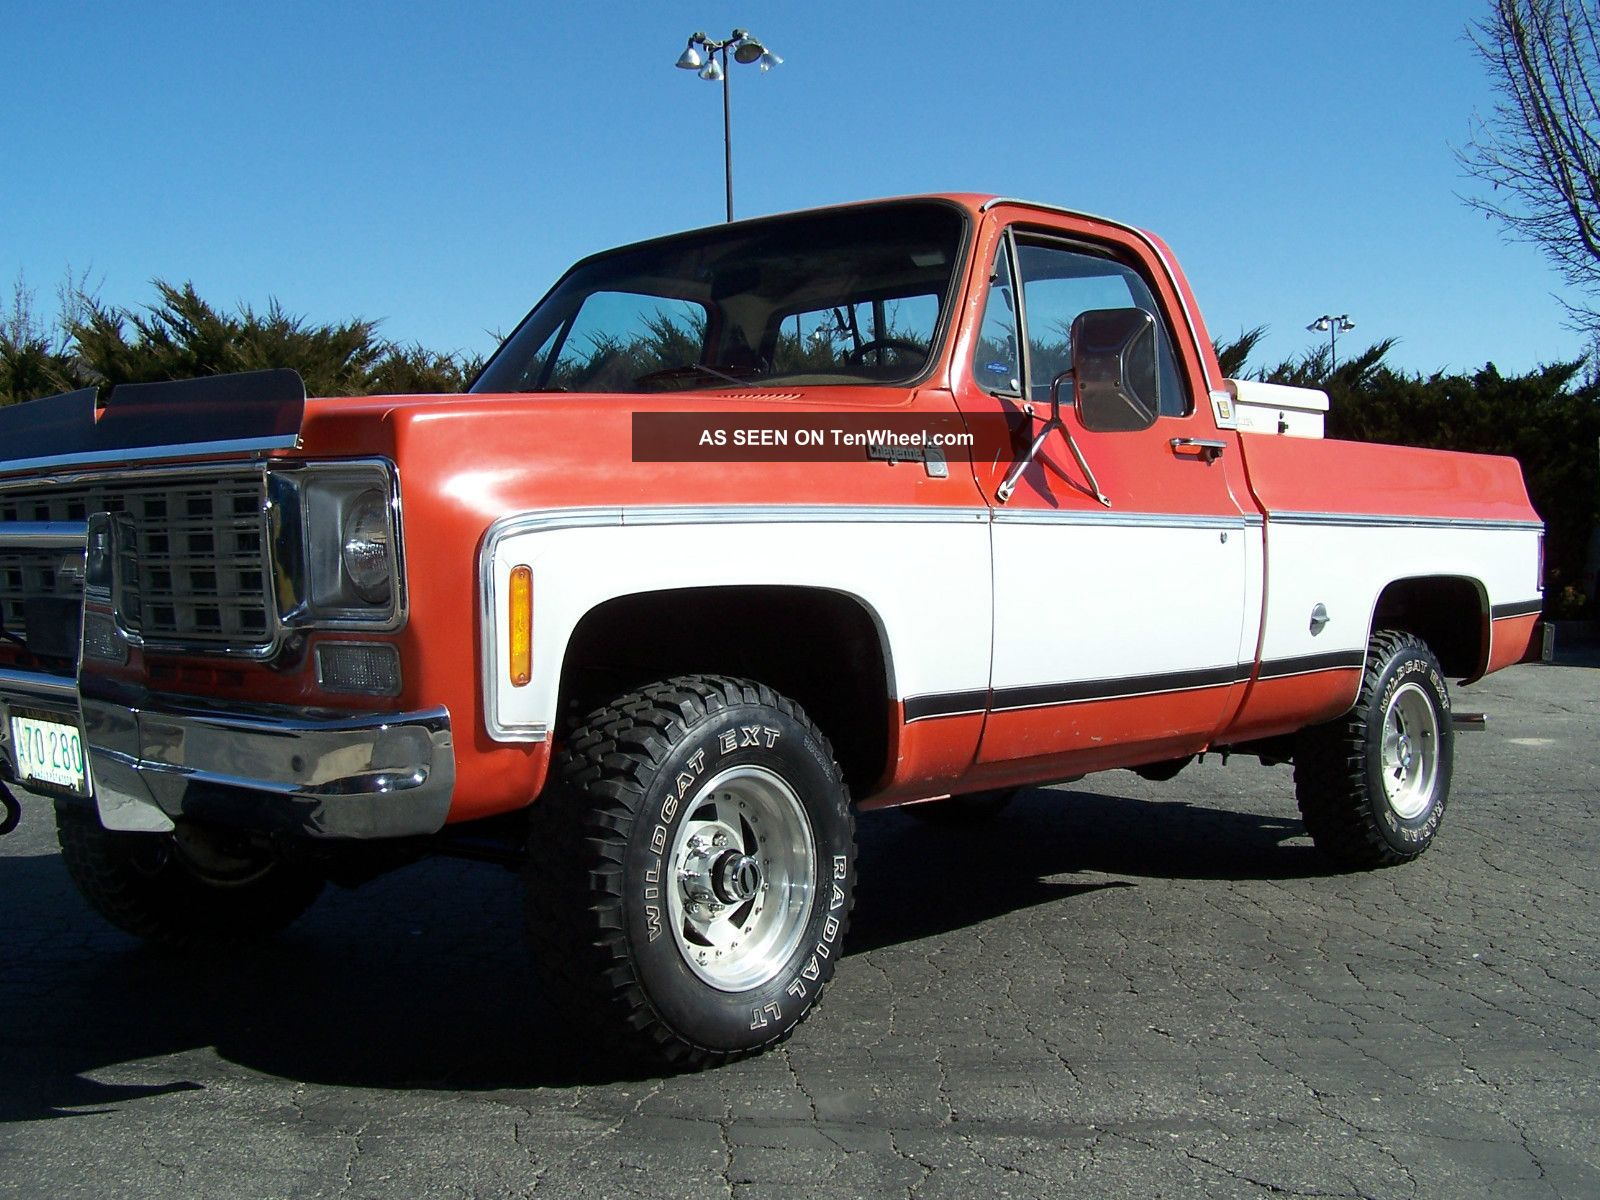 1976 Chevy Truck 4x4 For Sale - Schematic Liry on 1983 chevy scottsdale, 1984 chevy scottsdale, 1973 chevy scottsdale, 1976 gmc scottsdale, 1977 chevy scottsdale, 1975 chevy scottsdale, 1980 chevy scottsdale, custom chevy scottsdale, 79 chevy scottsdale, 1979 chevy scottsdale, 1974 chevy scottsdale, 1972 chevy scottsdale, 76 chevy scottsdale, 1981 chevy scottsdale, 77 chevy scottsdale, 1982 chevy scottsdale, 81 chevy scottsdale, 89 chevy scottsdale, 78 chevy scottsdale, 1978 chevy scottsdale,